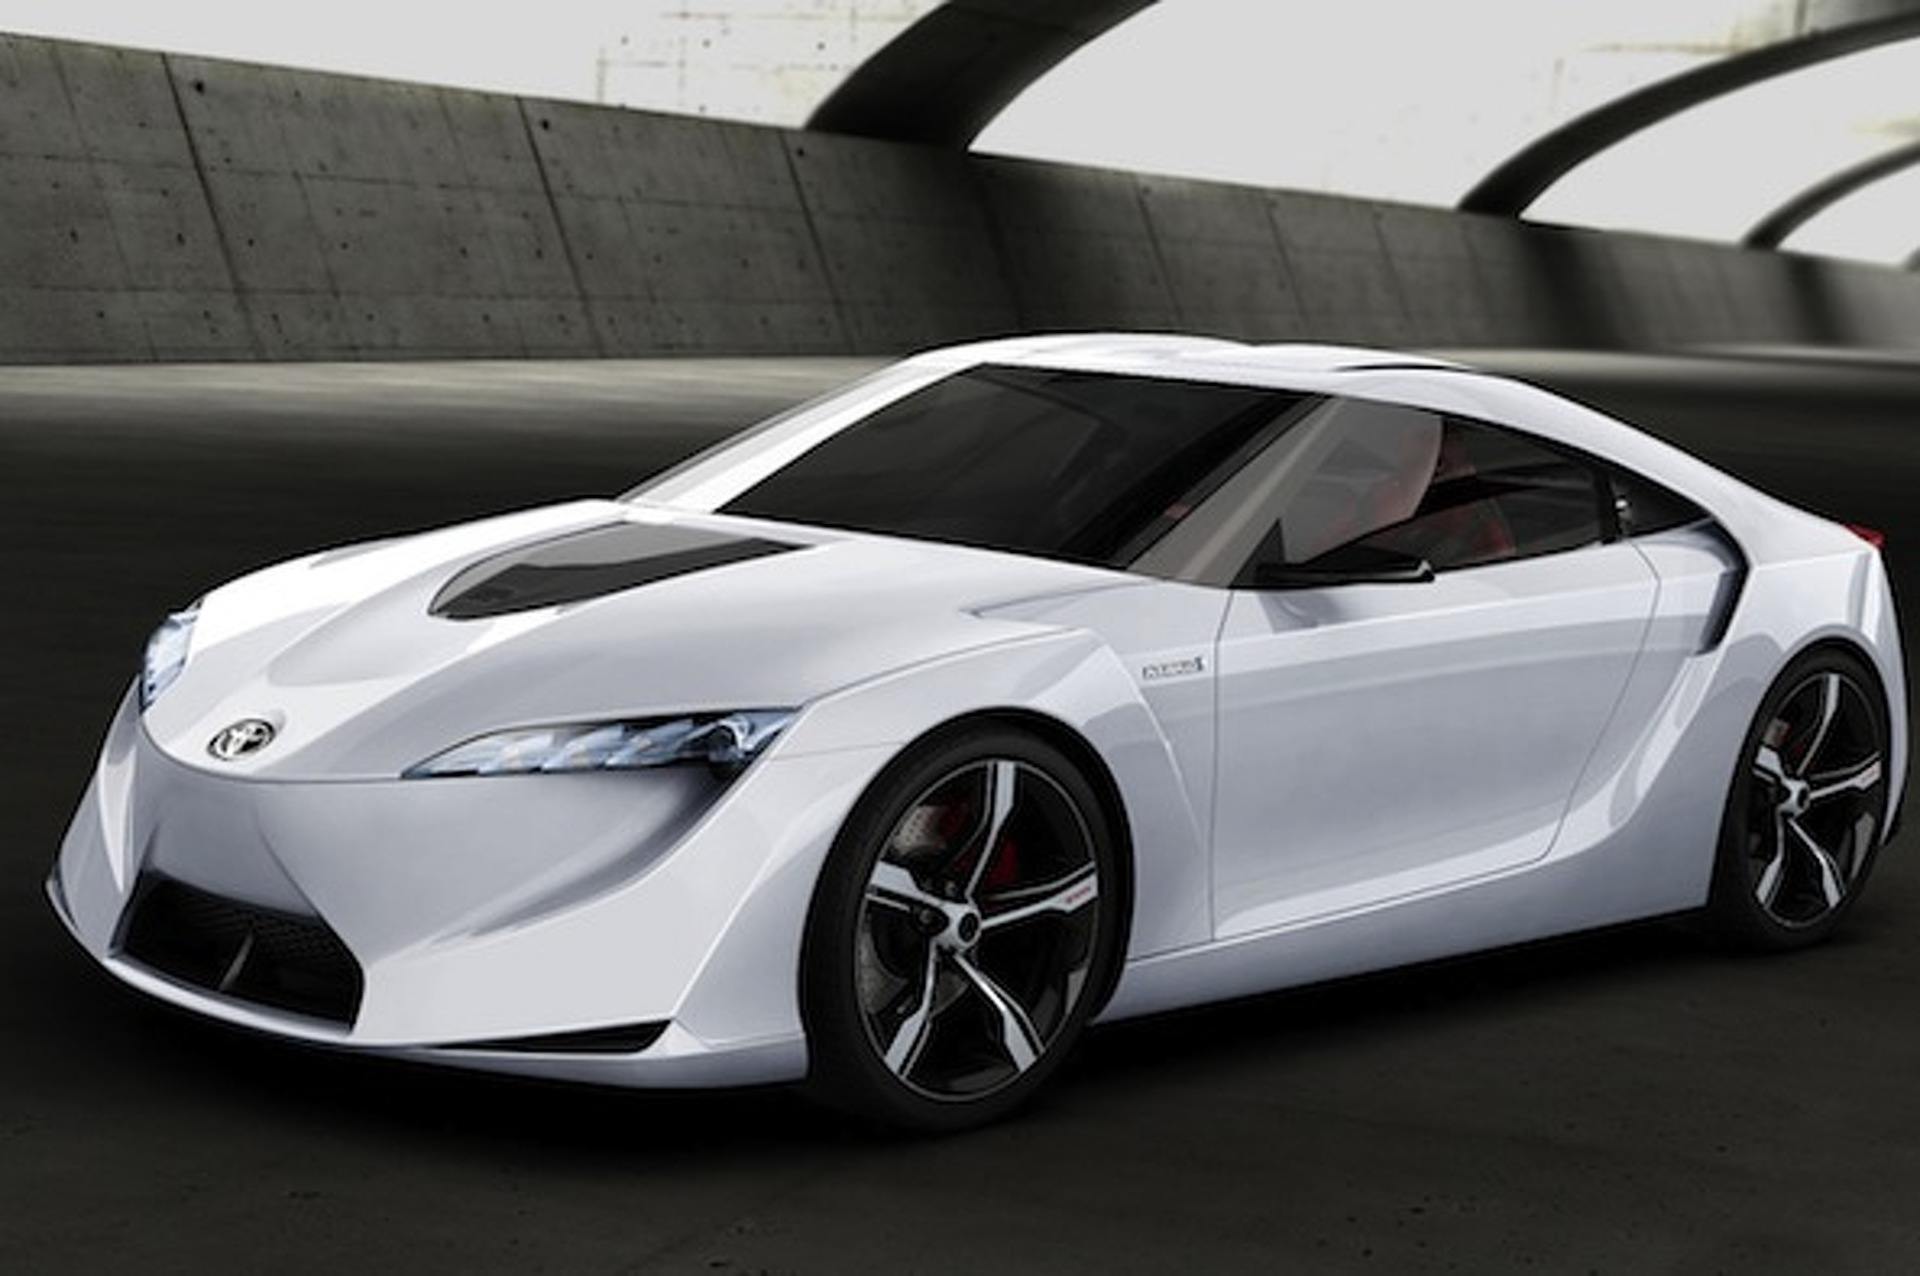 10 Hybrid Supercars To Expect in the Next 5 Years